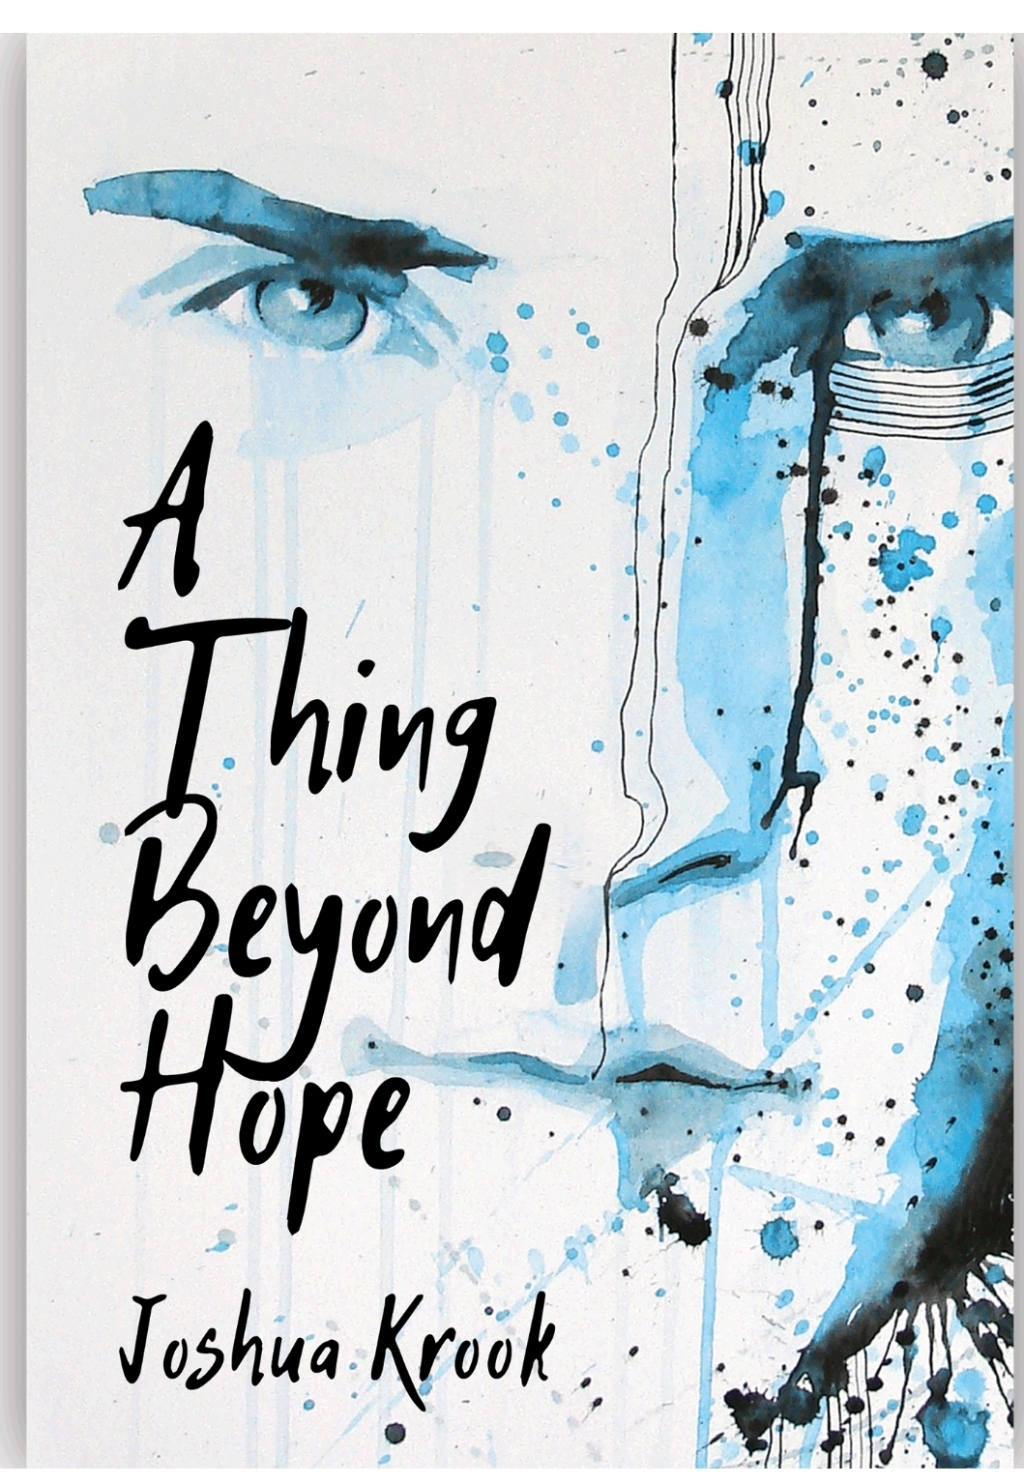 https://www.amazon.com/dp/B07DW8Y399/ref=sr_1_2?ie=UTF8&qid=1529566269&sr=8-2&keywords=a+thing+beyond+hope